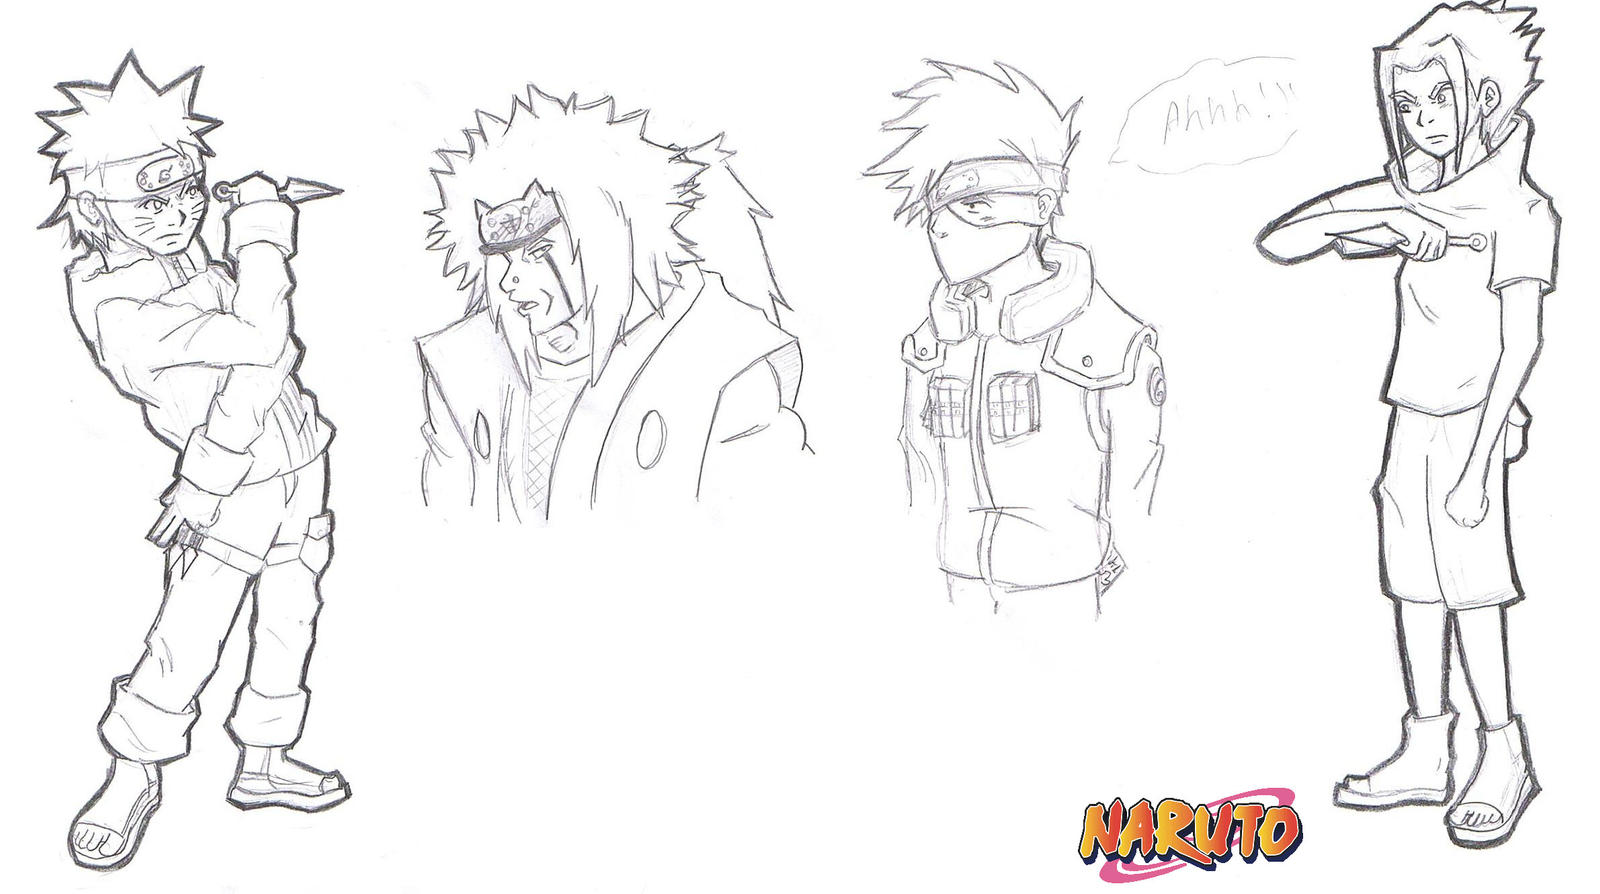 Gallery How To Draw Ariels Body moreover 77972632718 furthermore Naruto Uzumaki And Hinata Hyuga Sketch 329096927 also Flame Natsu Dragneel Lineart 345896487 likewise Manga Review Of Tokyo Ghoul. on sasuke full body